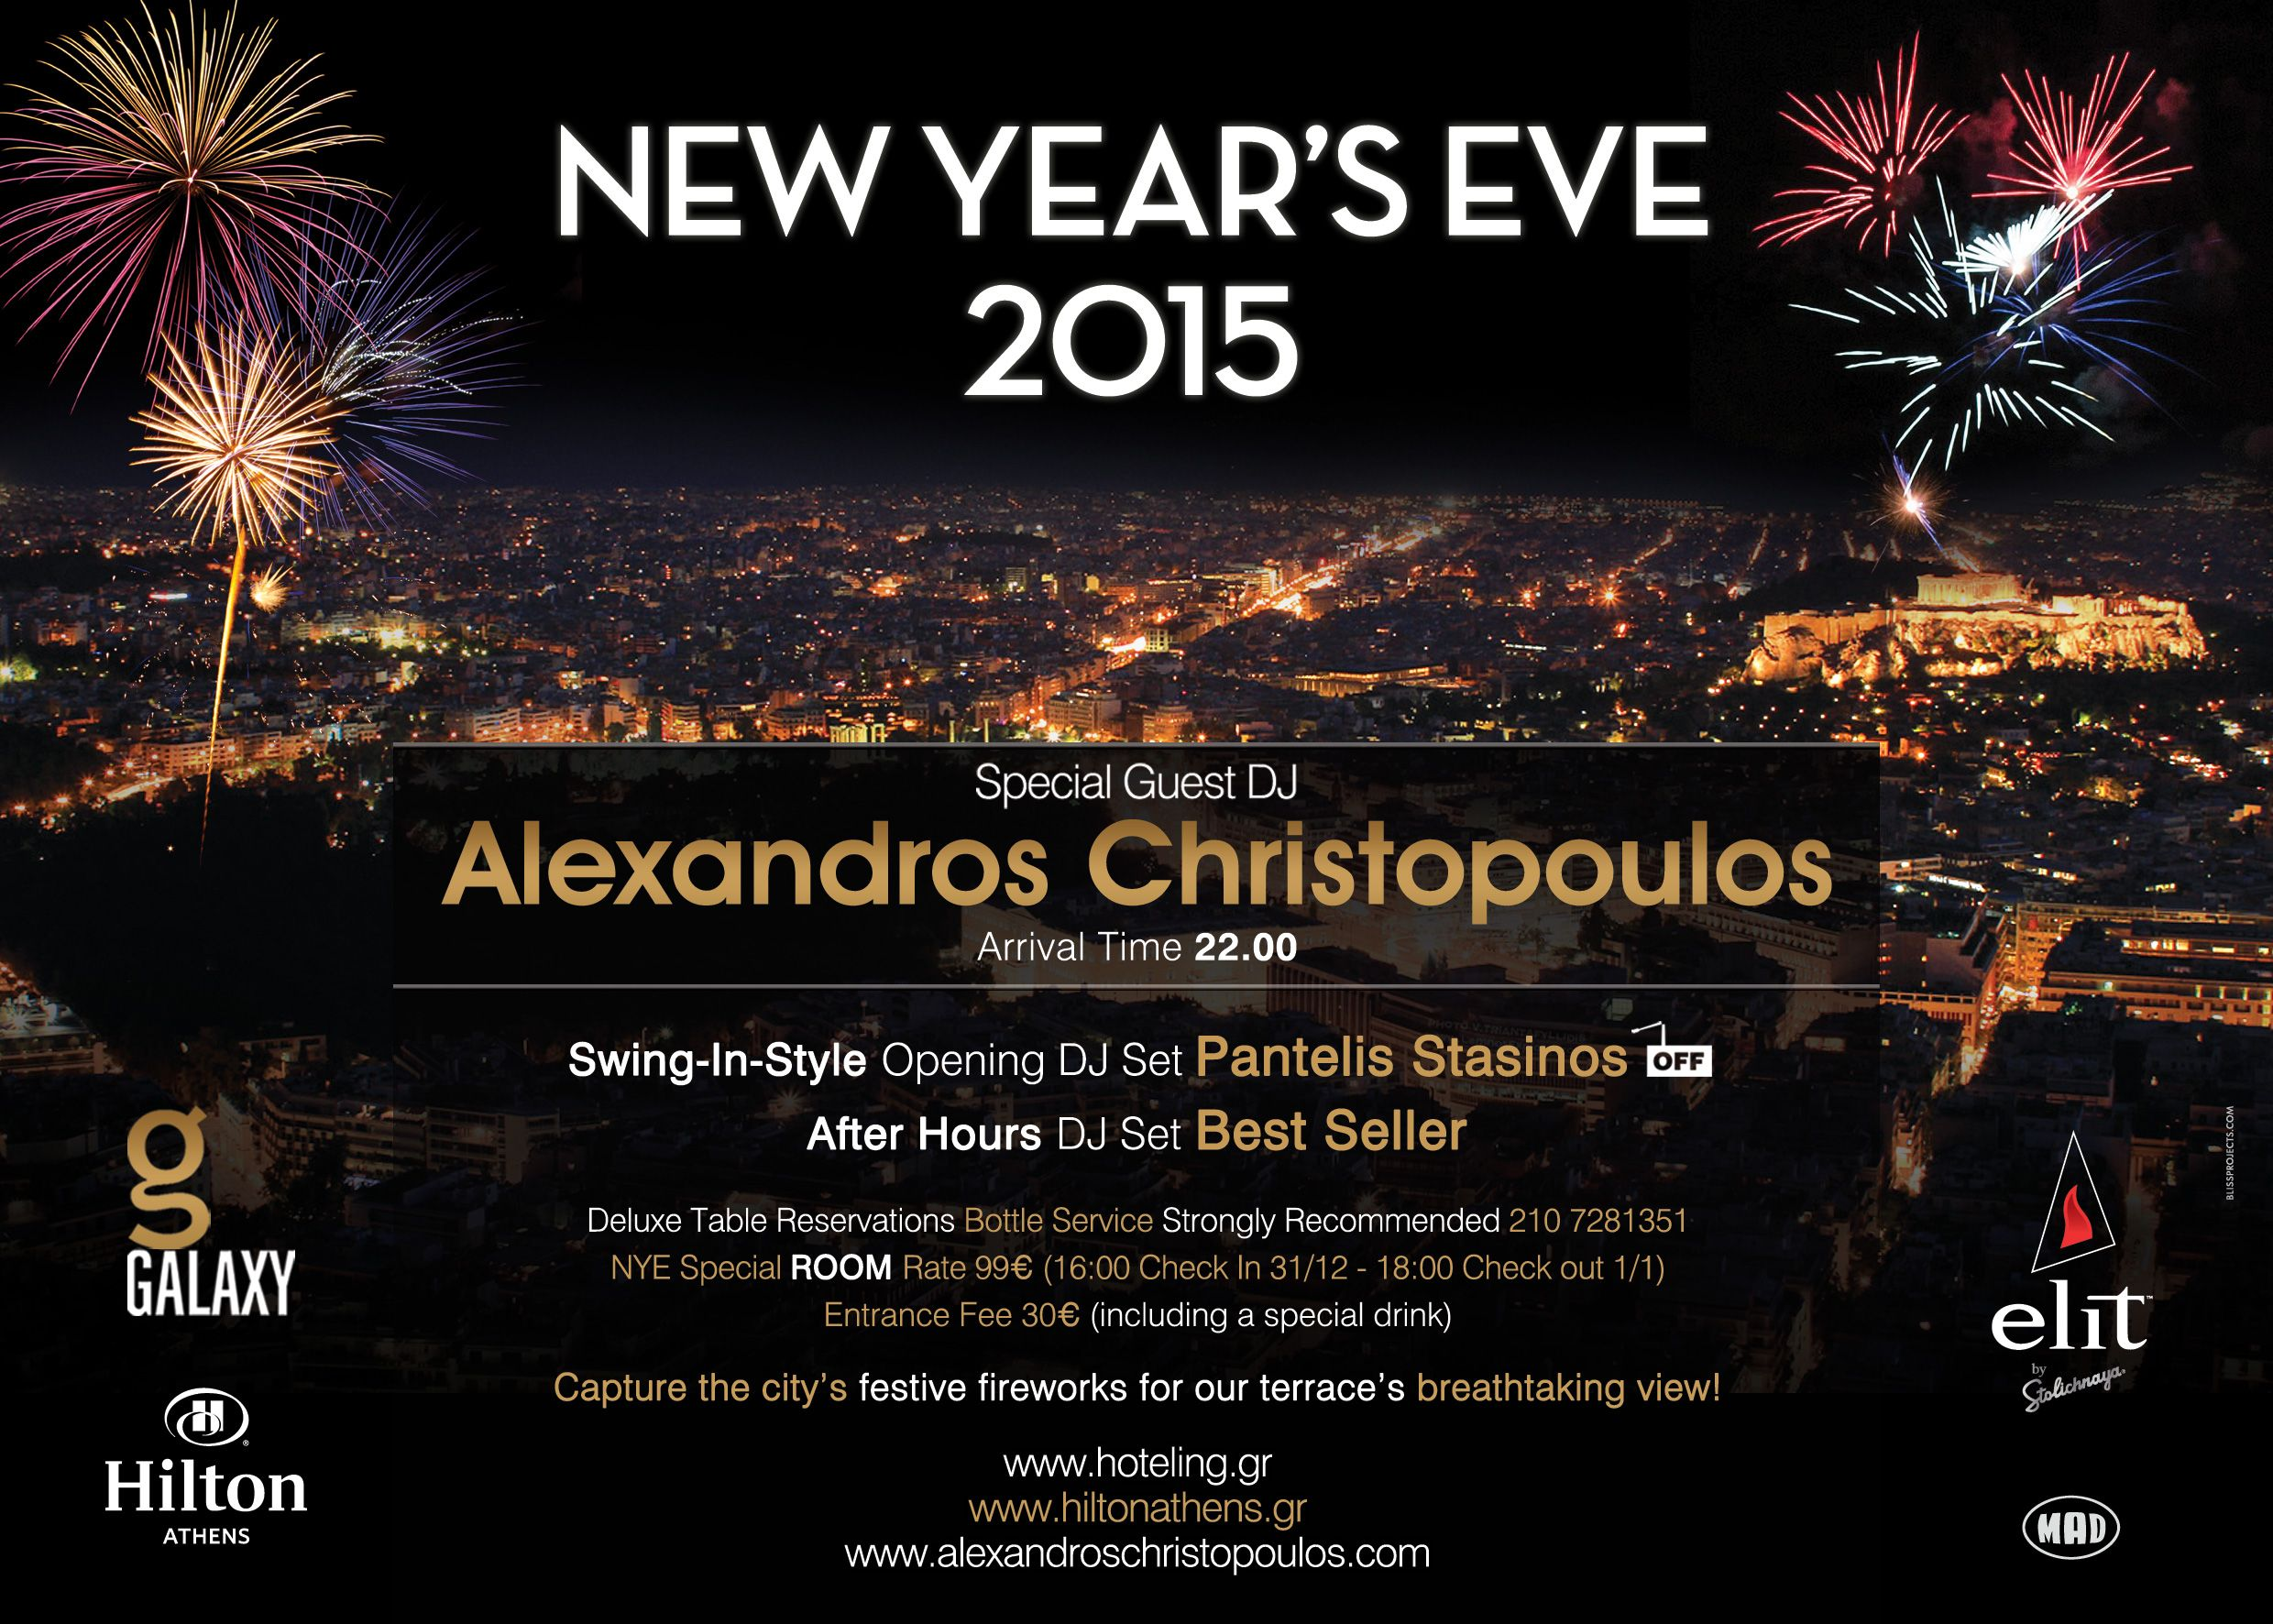 New Year S Eve In Galaxy Bar New Years Eve 2015 New Years Eve Special Guest